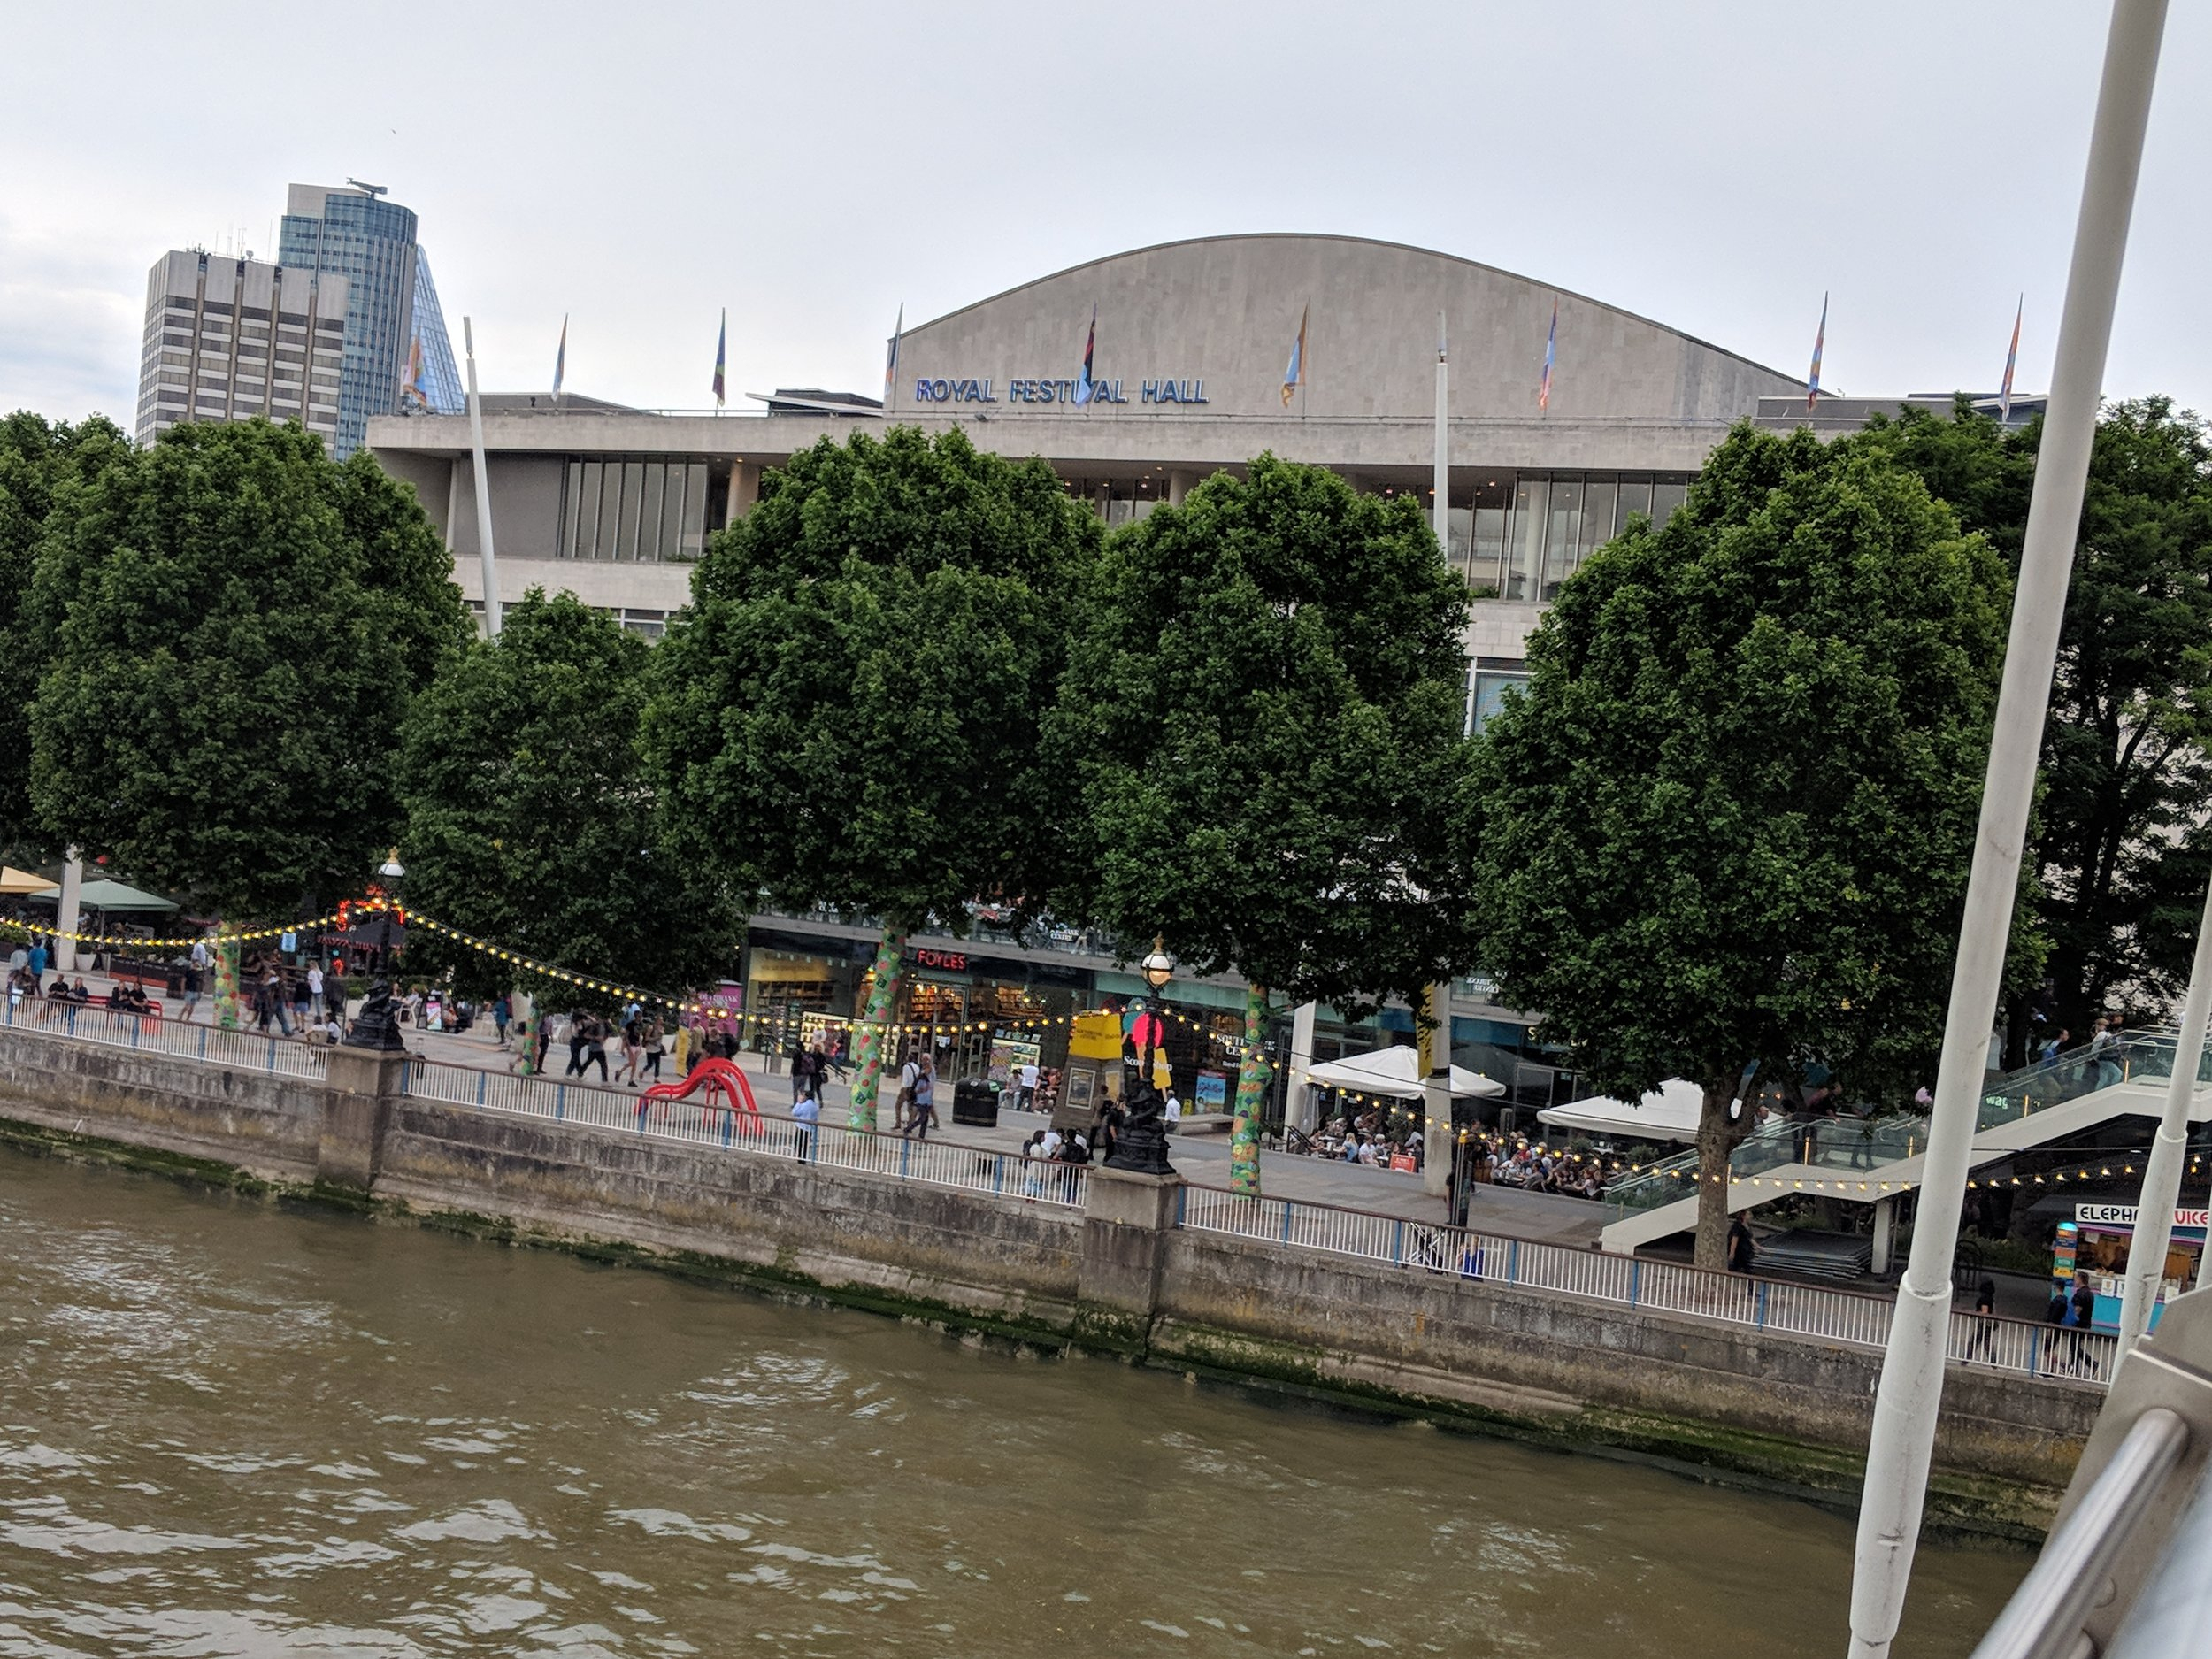 Southbank Centre(Royal Festival Hall) - visited 24/06/2019